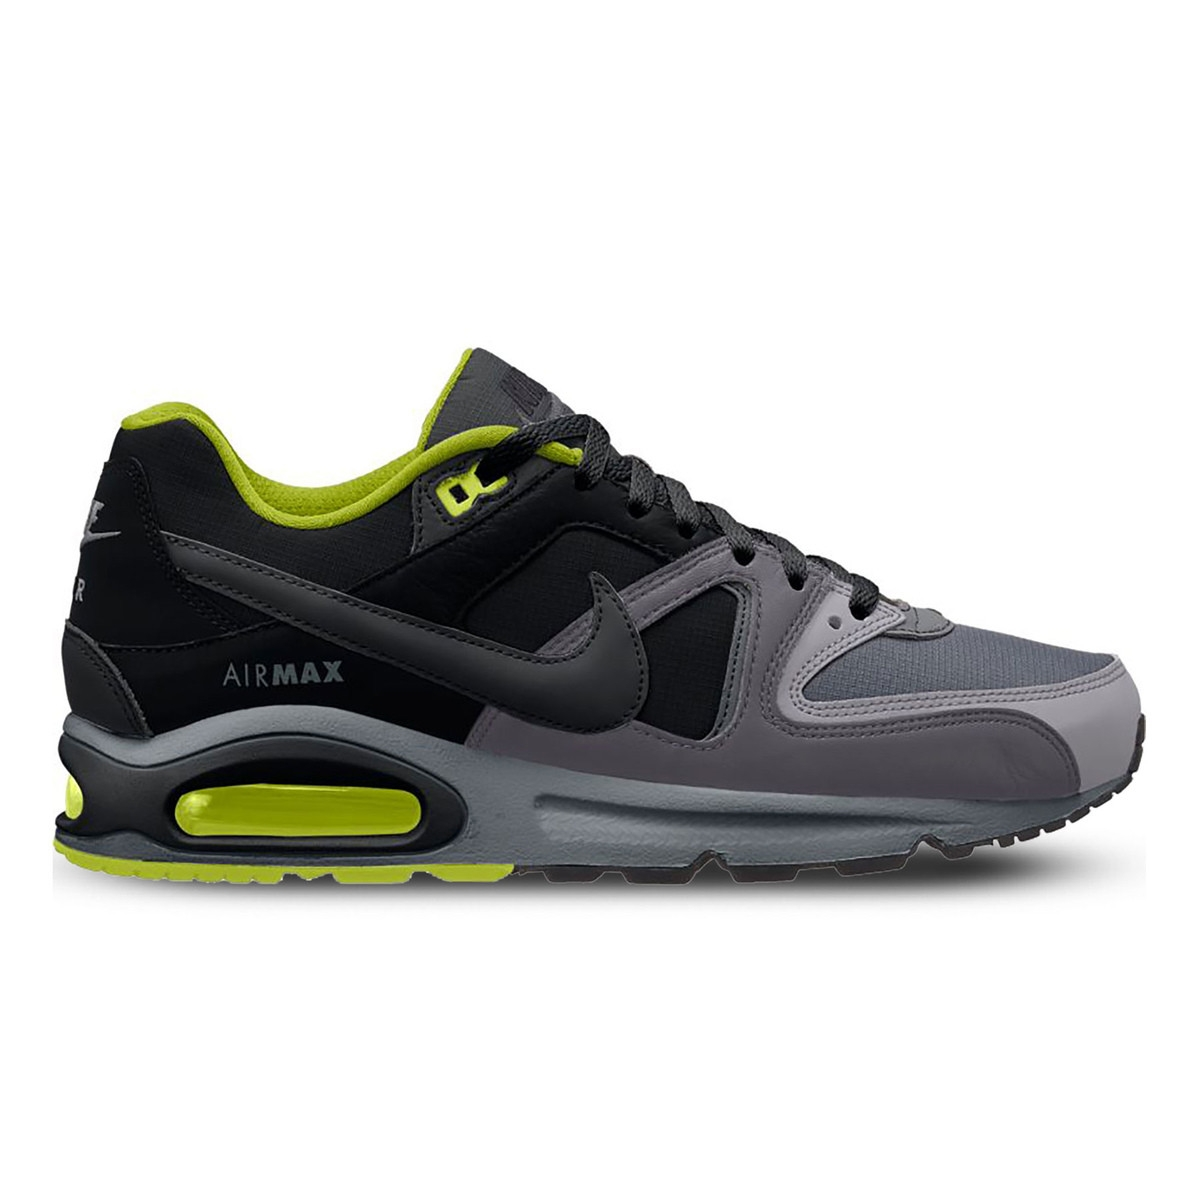 Home · Scarpe · Sneaker · Scarpa Nike Air Max Command. LOADING IMAGES 96caa4e42e7